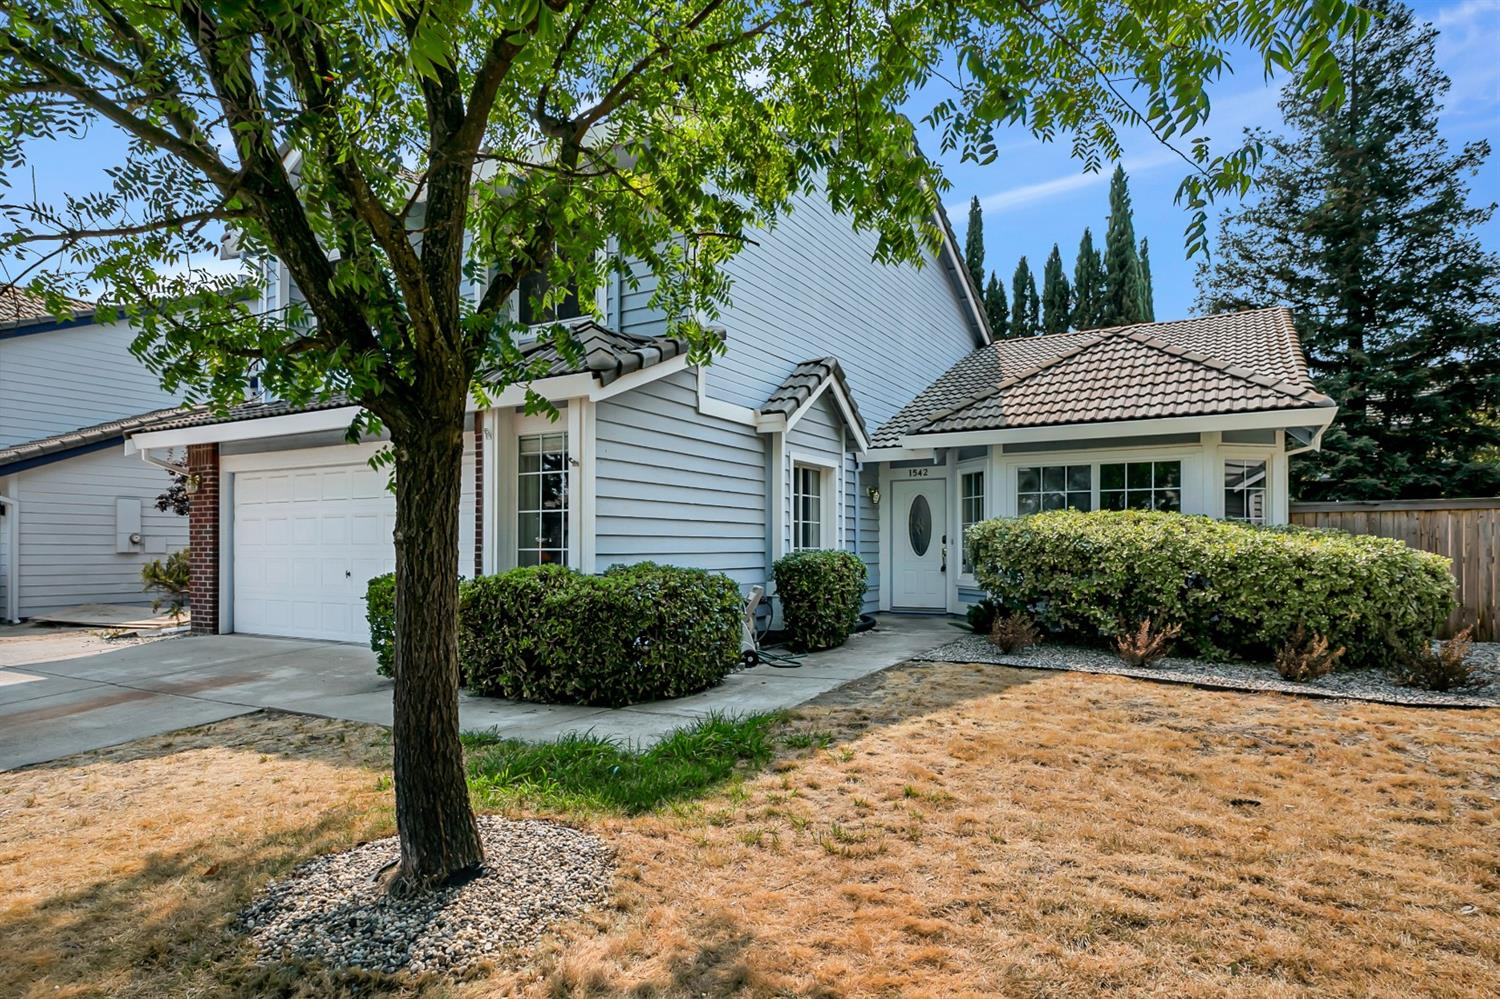 Photo 4 for Listing #221084351